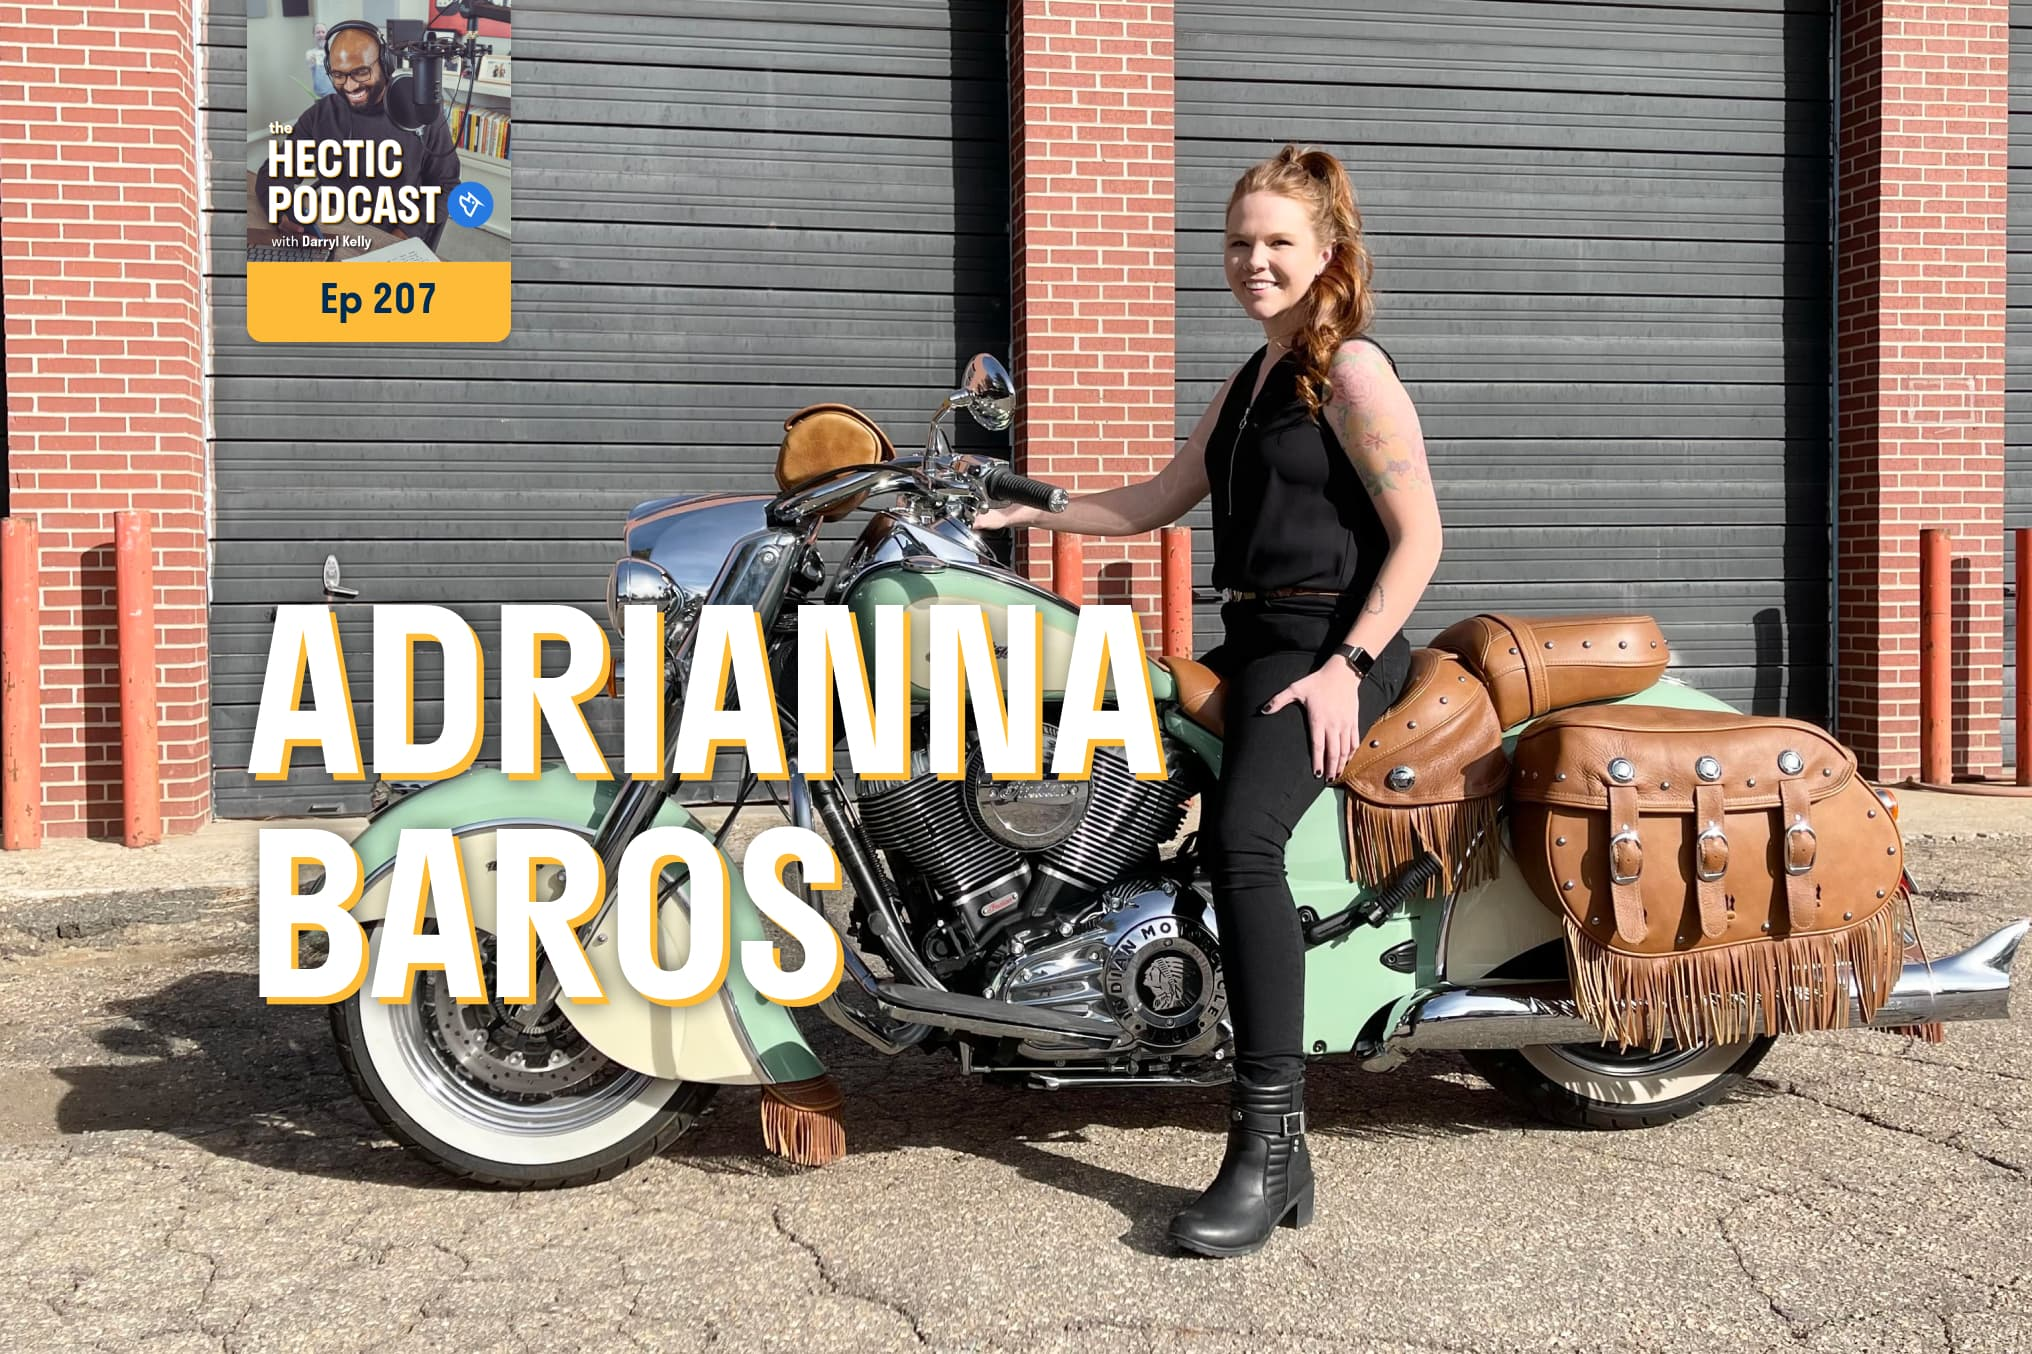 The Hectic Podcast with Adrianna Baros